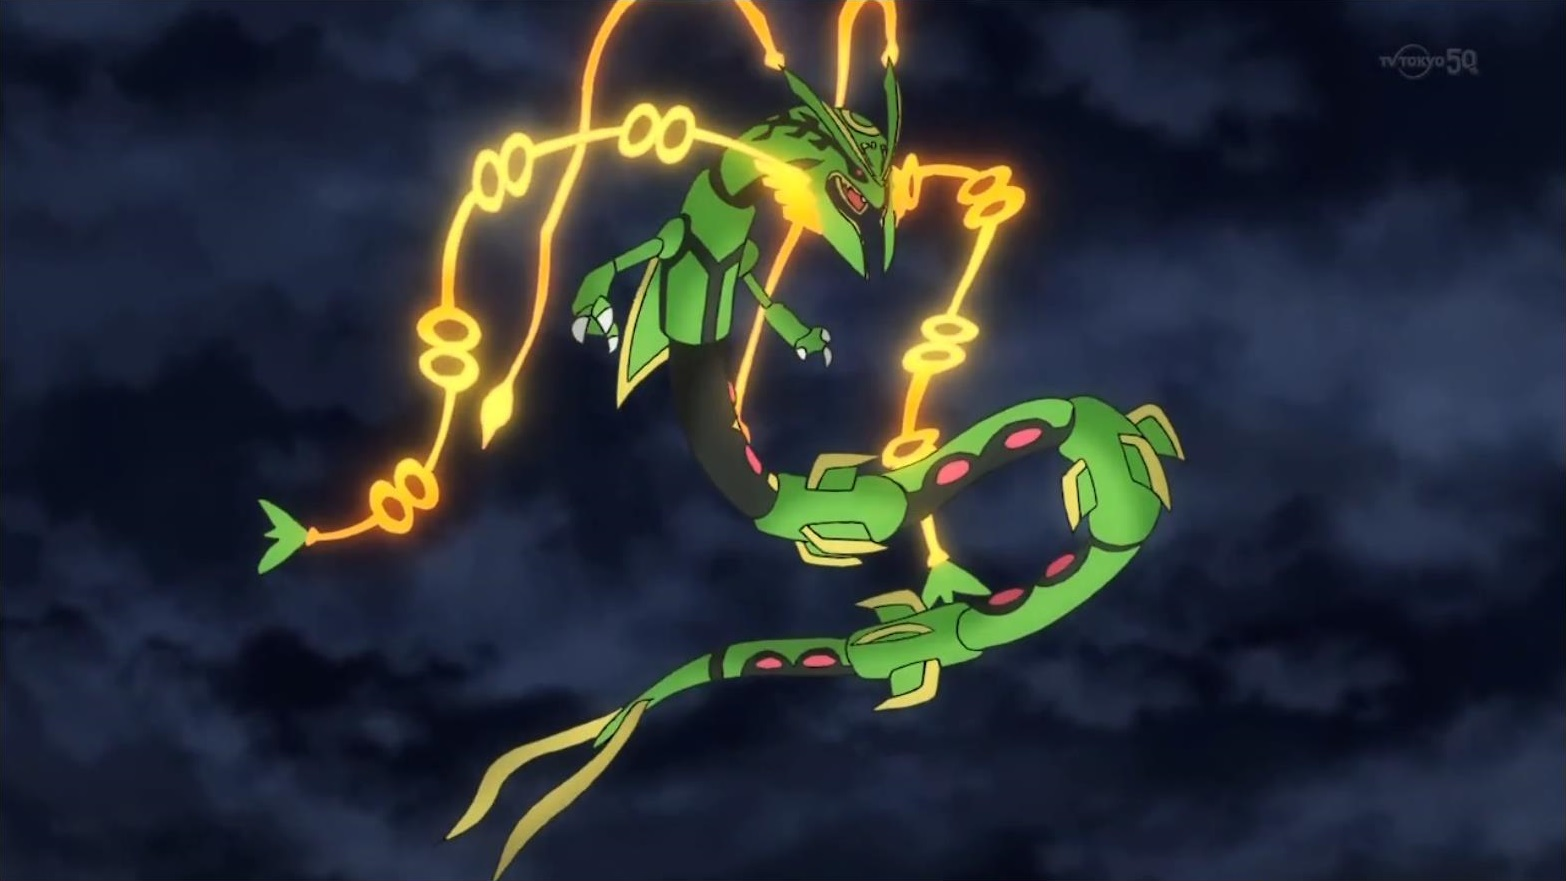 mega rayquaza hd wallpaper wallpapersafari